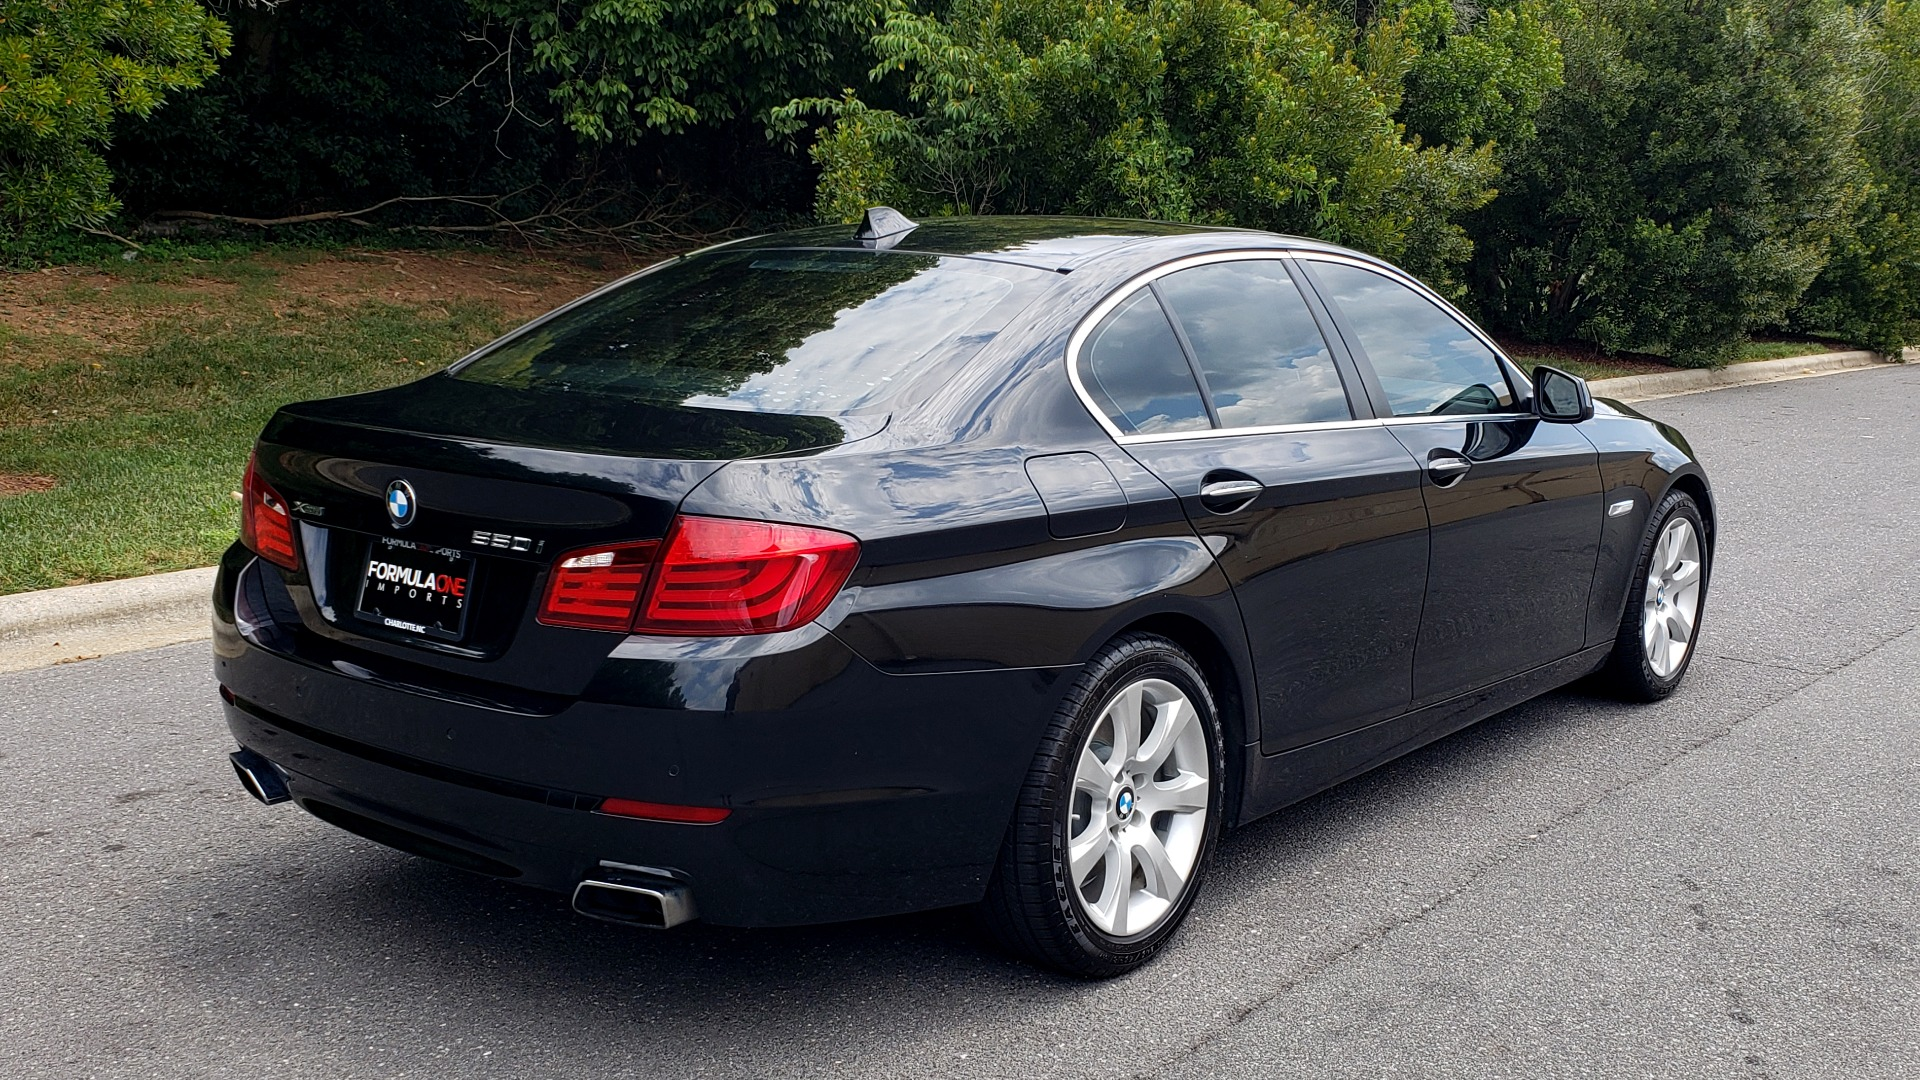 Used 2013 BMW 5 SERIES 550I XDRIVE LUX PKG / EXEC / COLD WTHR / NAV / SUNROOF / REARVIEW for sale $17,995 at Formula Imports in Charlotte NC 28227 6